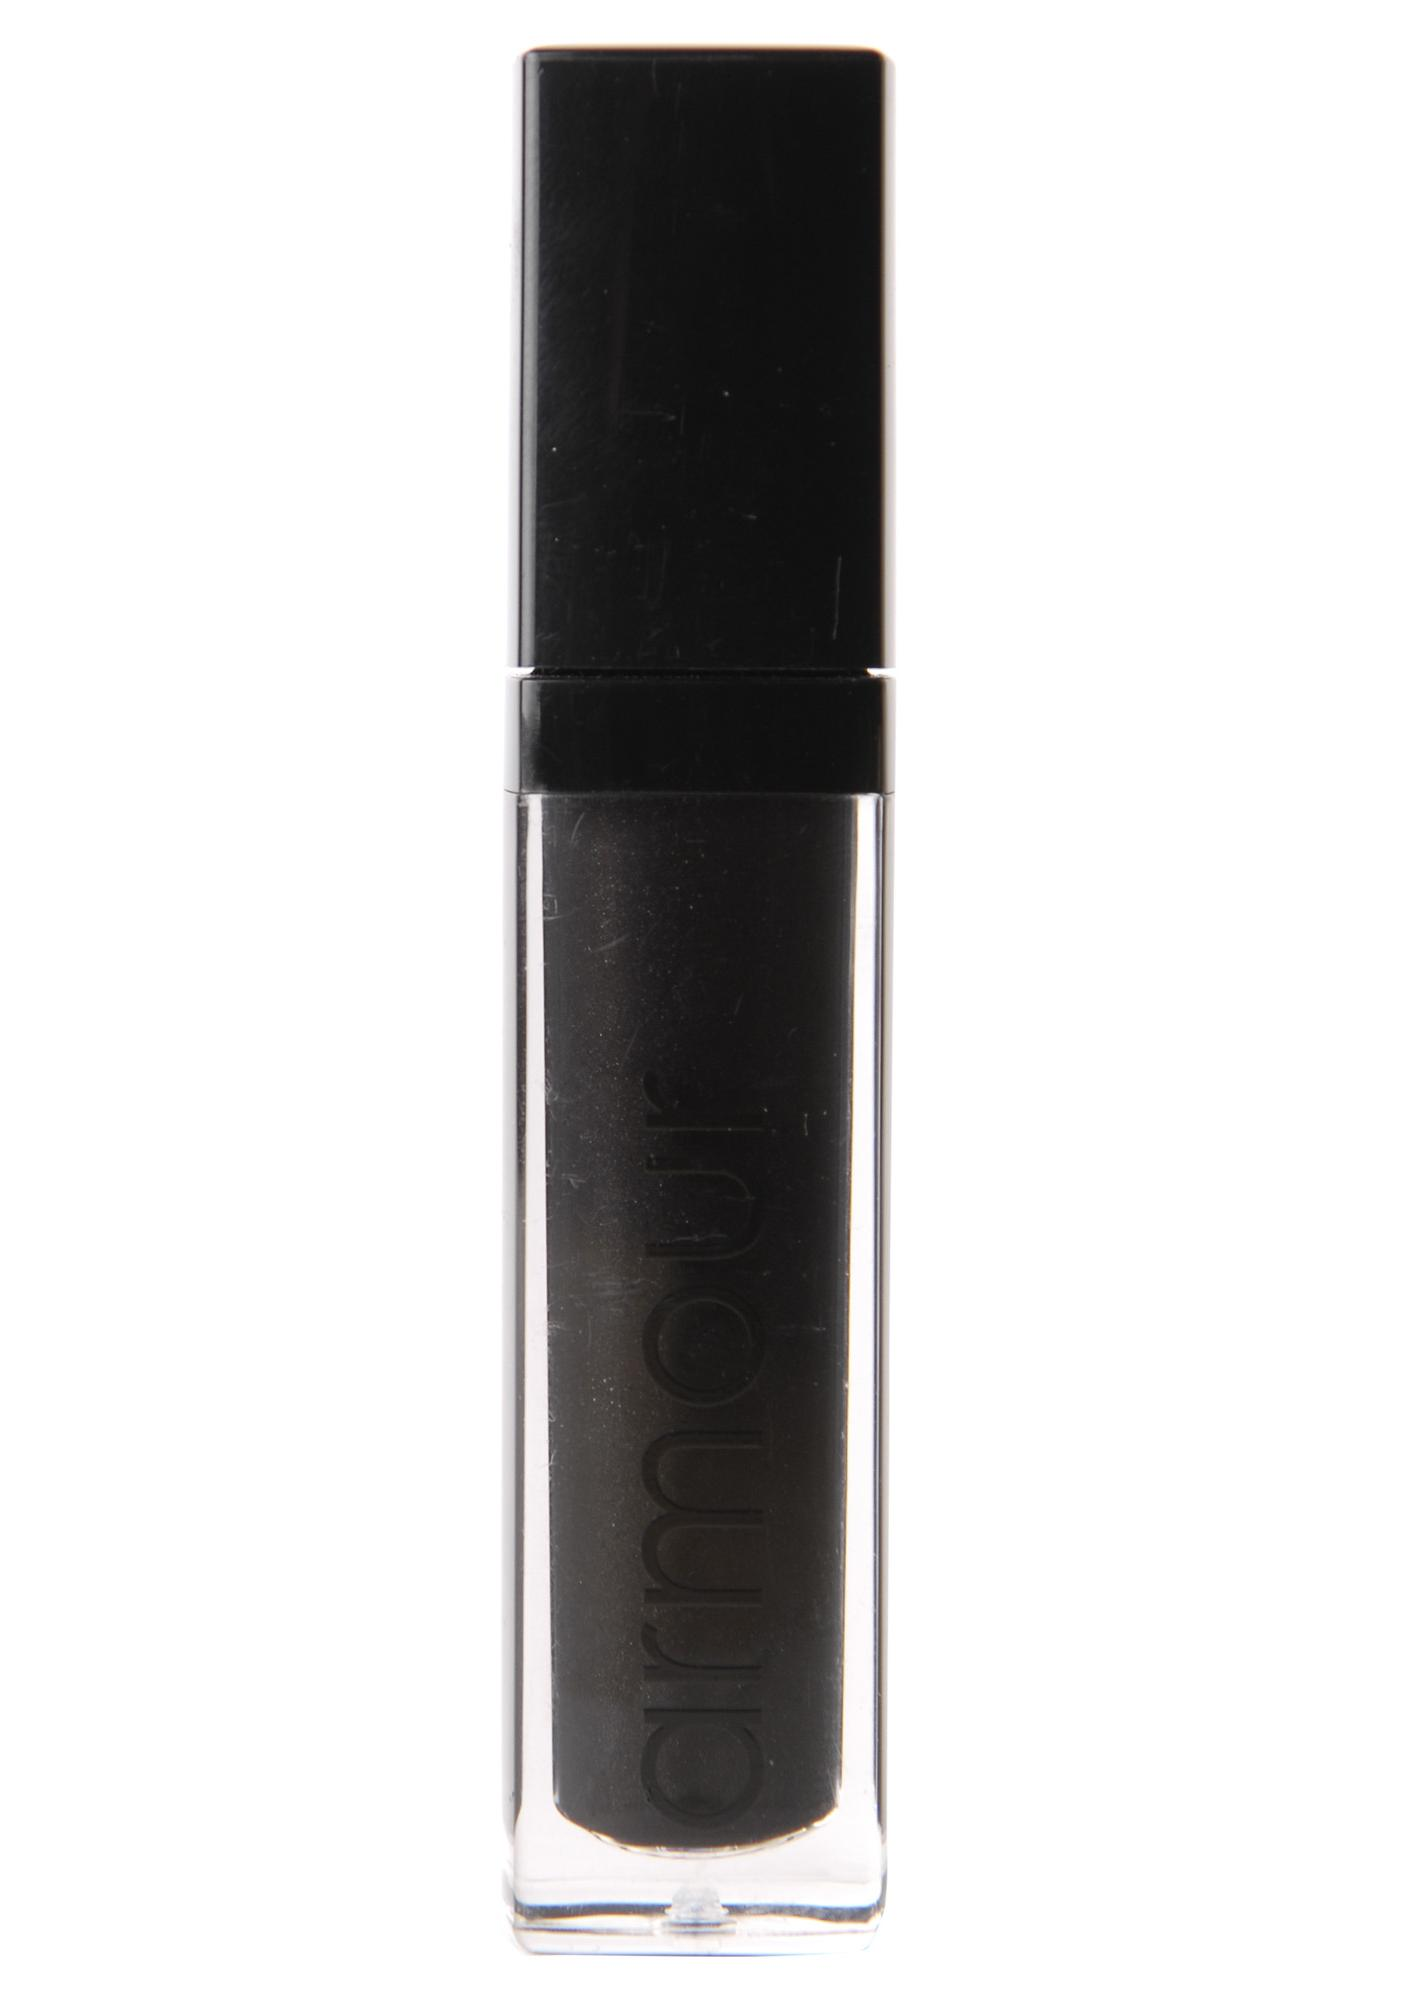 Armour Beauty Femme Fatale Opaque Lip Gloss